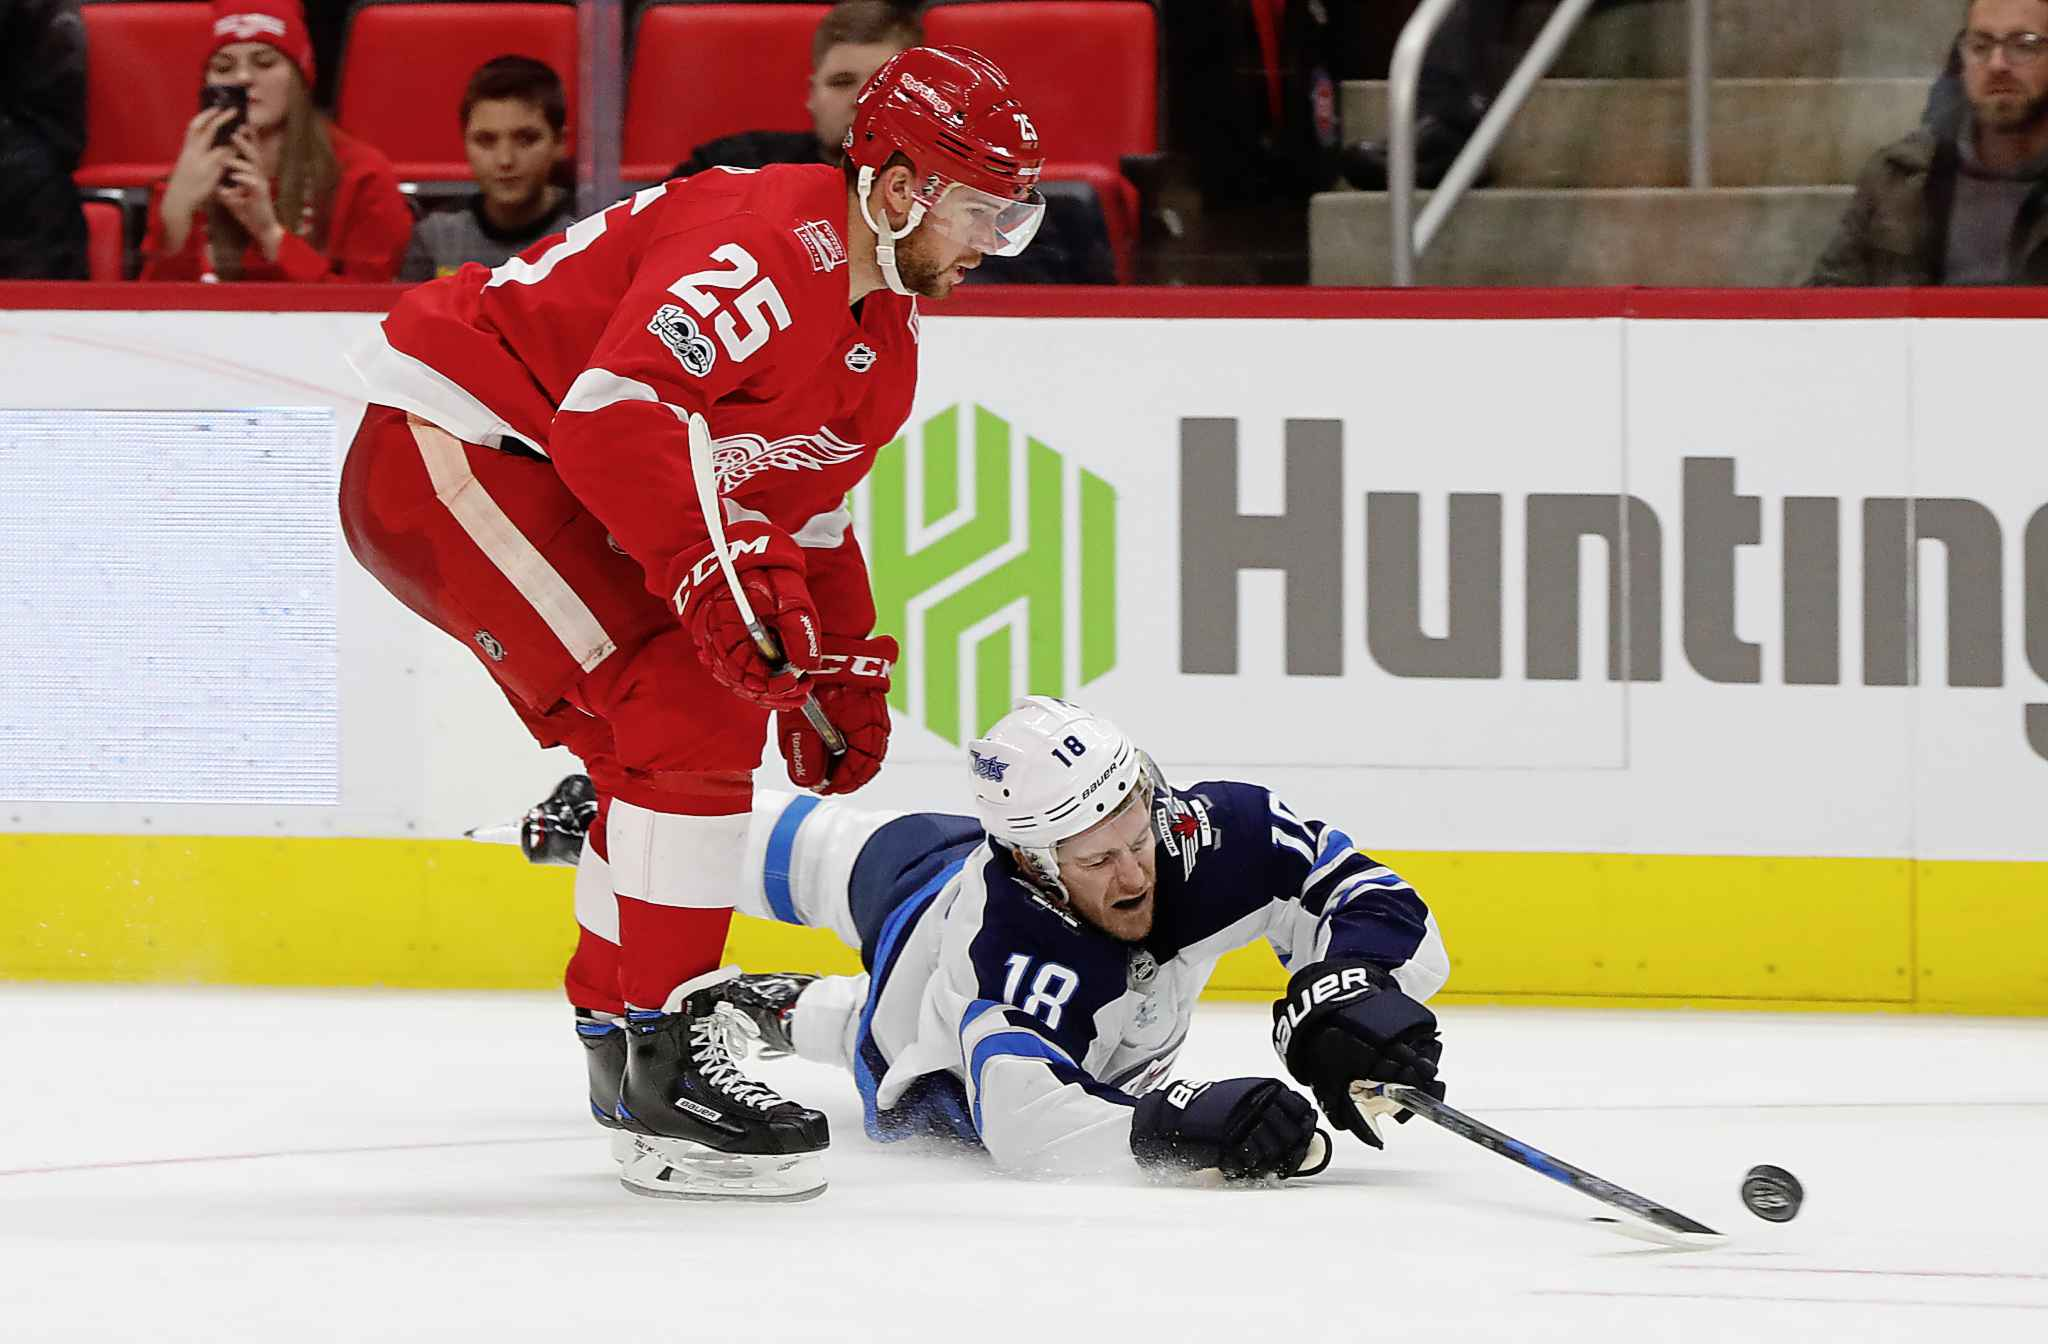 Winnipeg Jets center Bryan Little tries to pass from the ice as Detroit Red Wings defenseman Mike Green defends in the third period of an NHL hockey game Tuesday in Detroit.